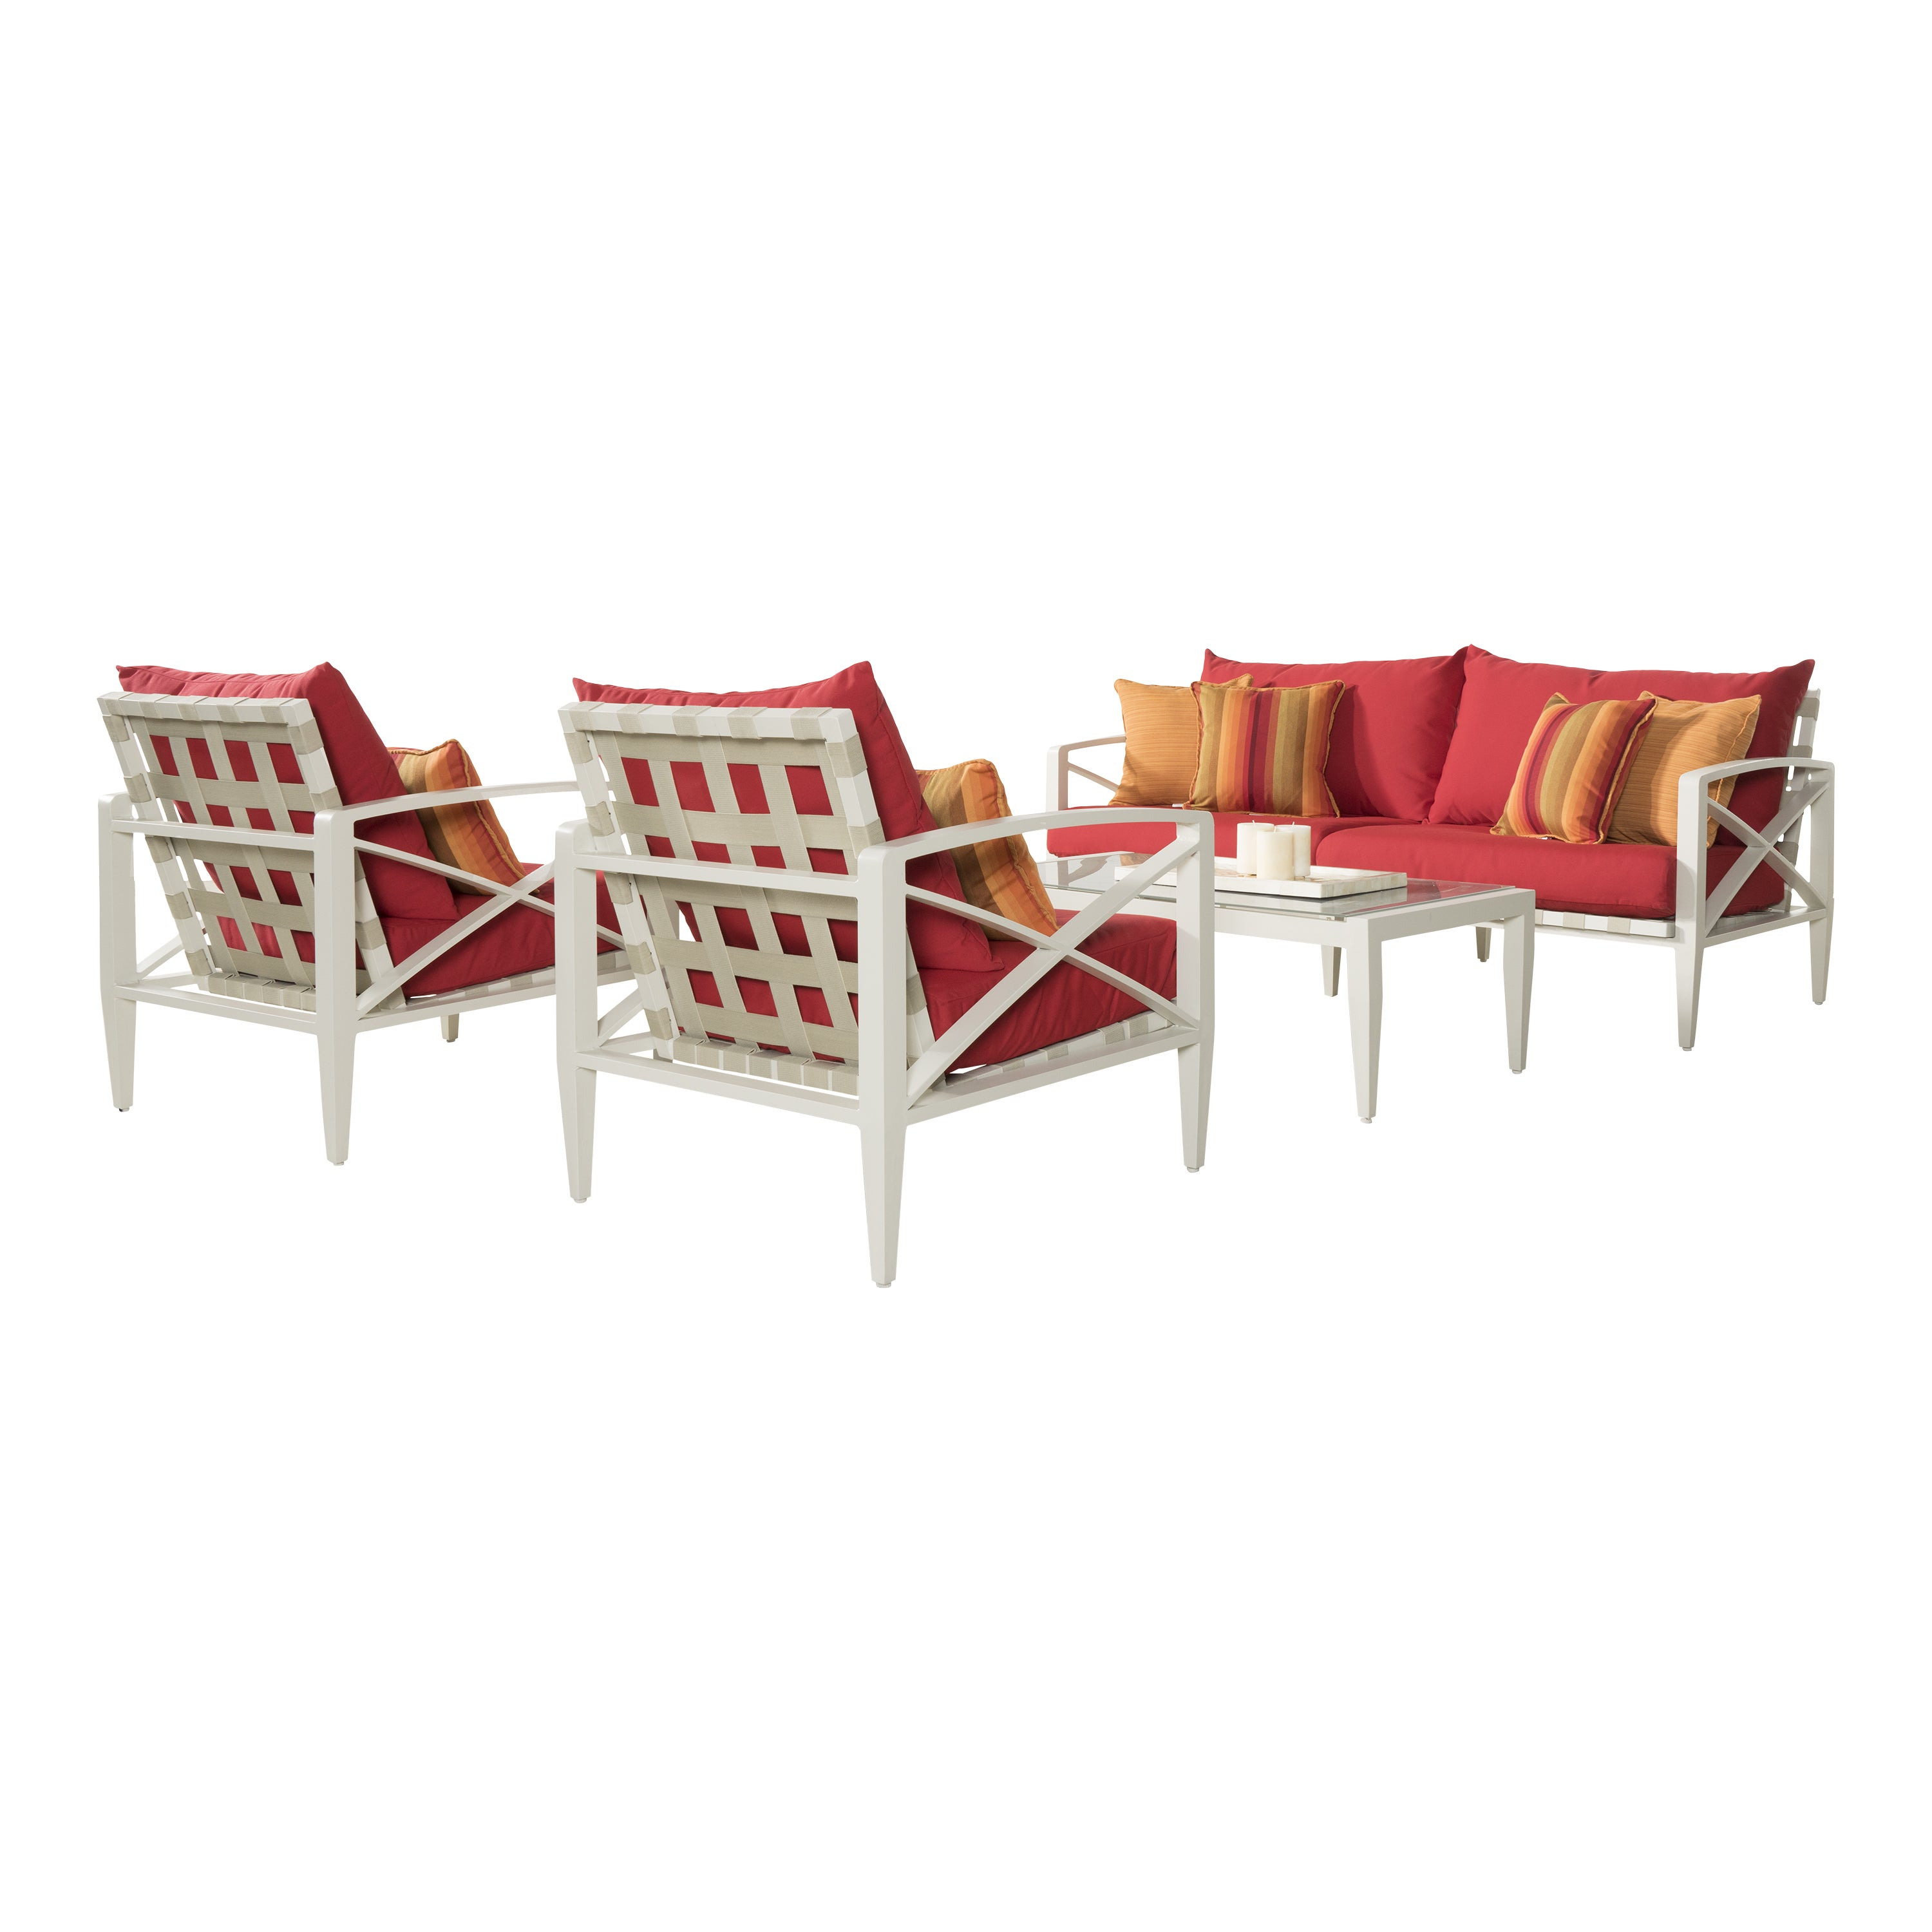 Rst Brands Knoxville Sunset Red Cushion